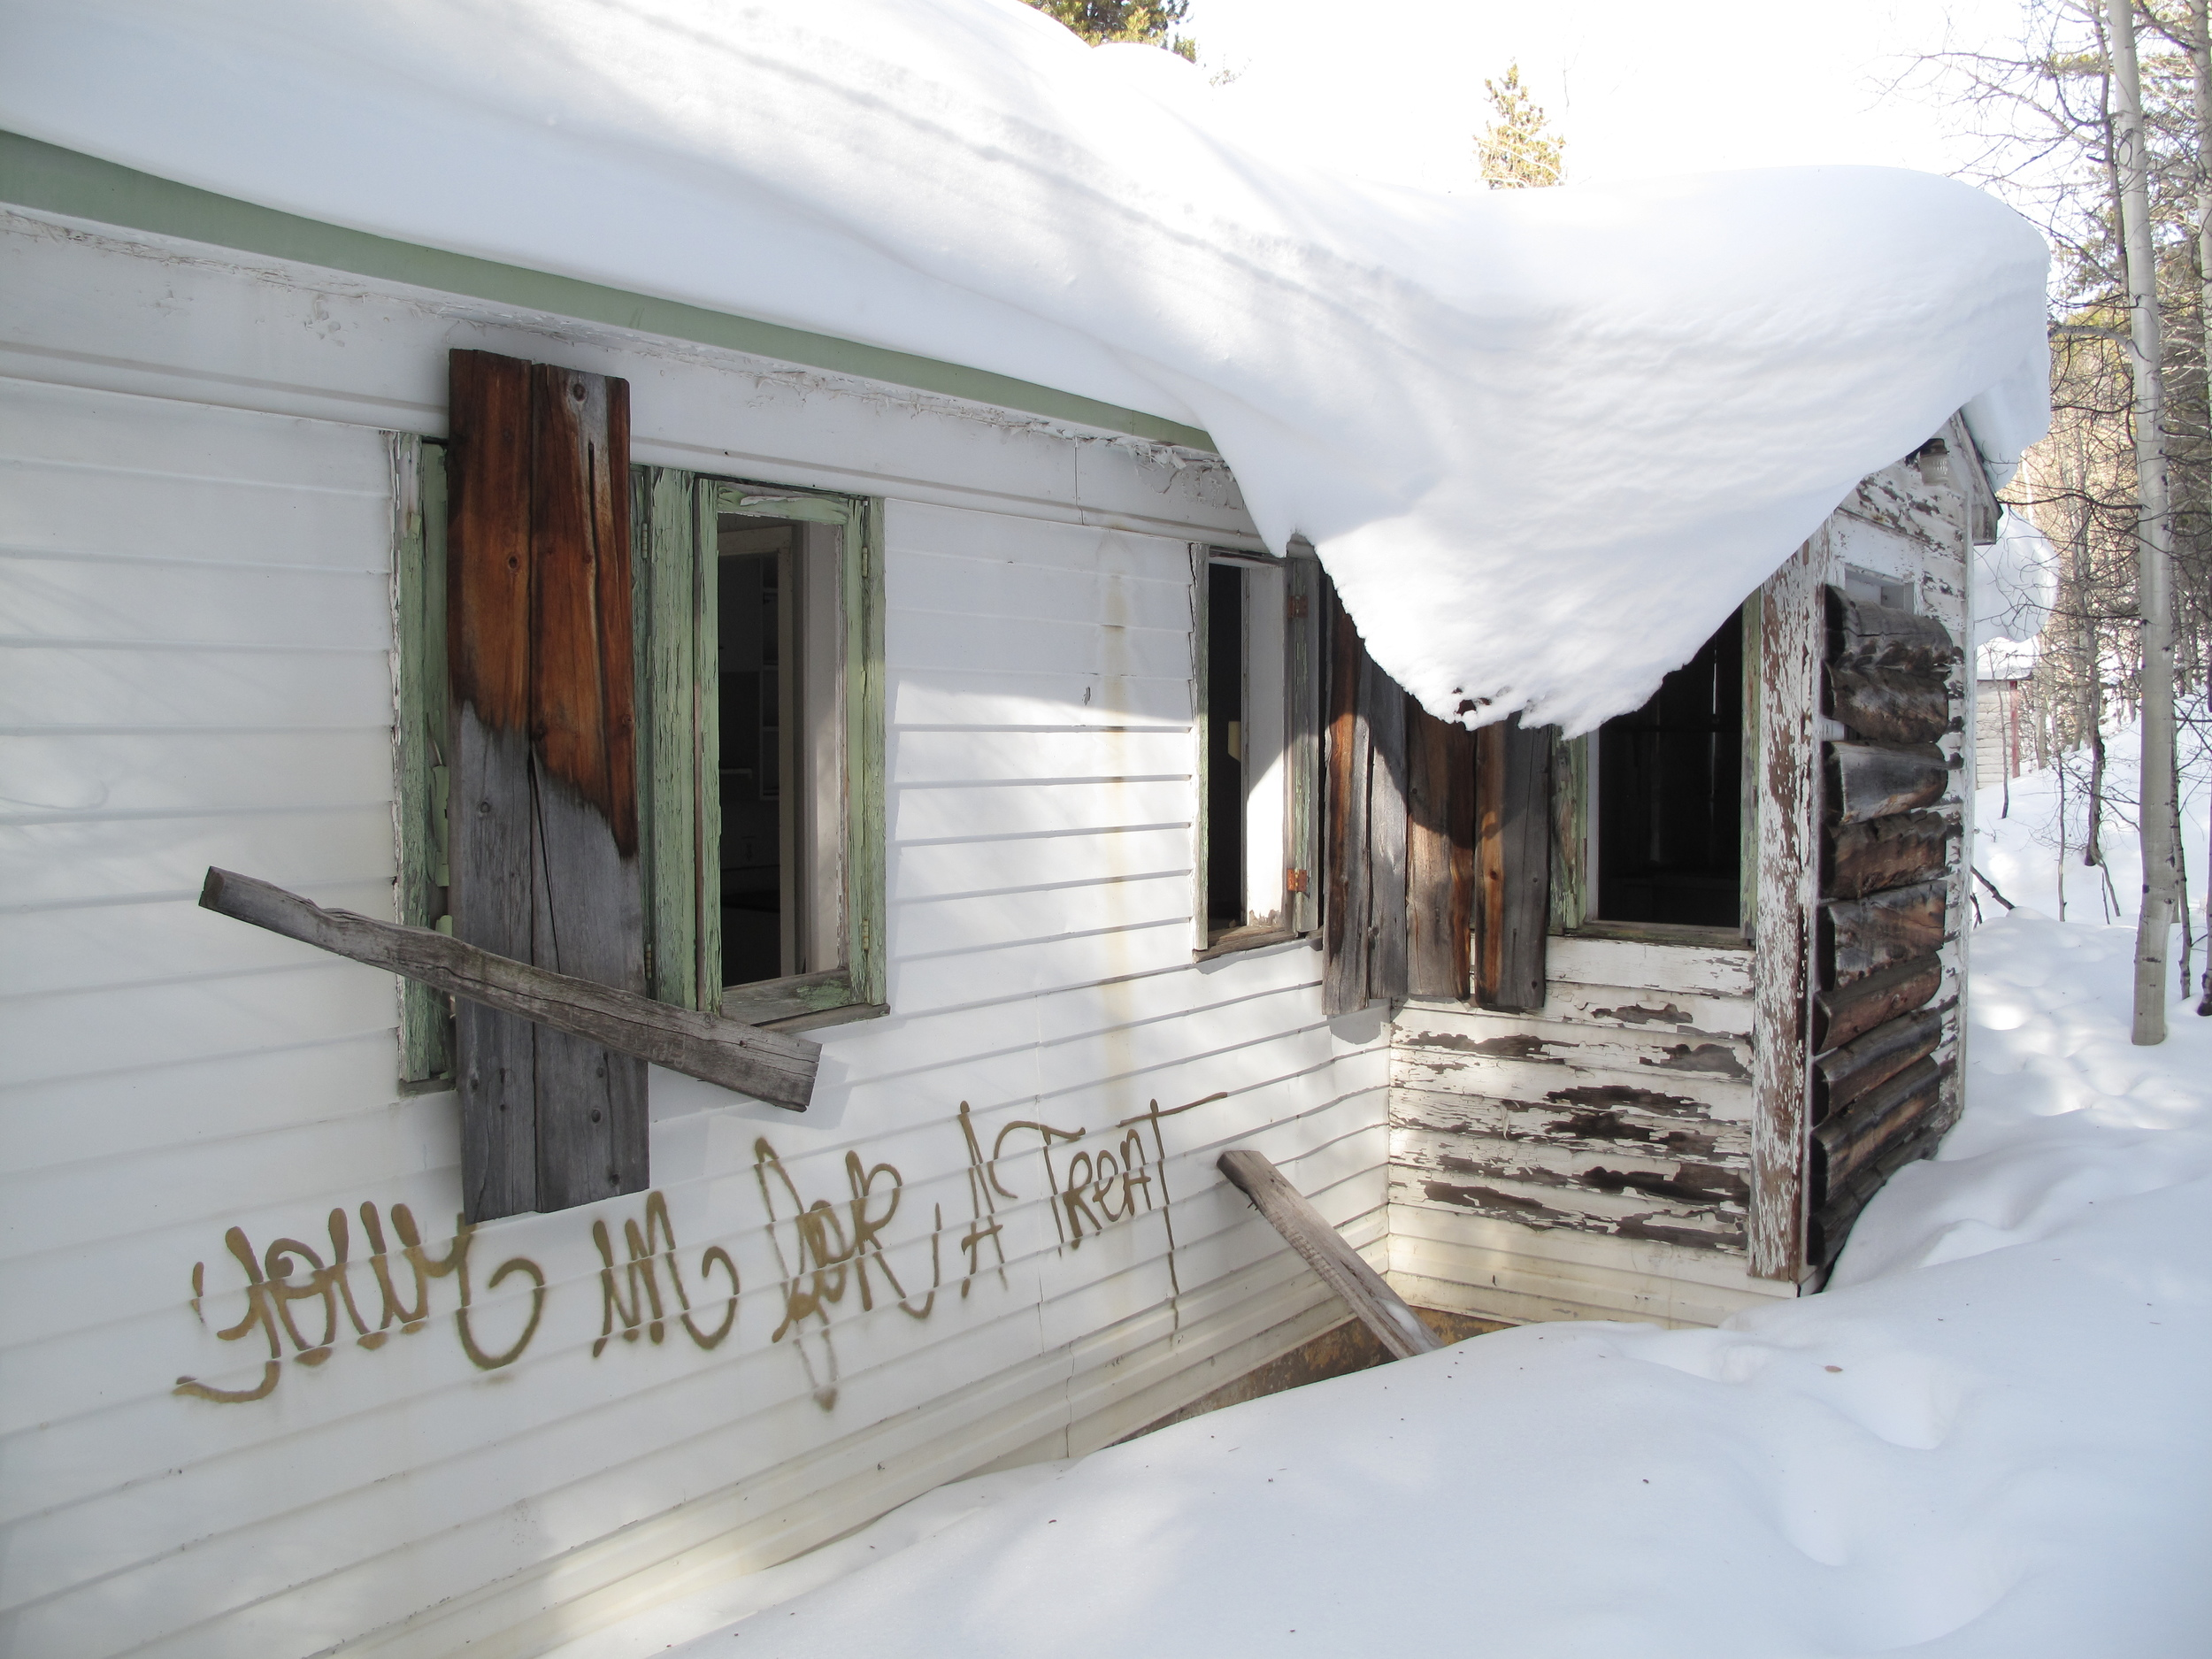 Snow and graffiti covered house, abandoned in the old mining town of Gilman.